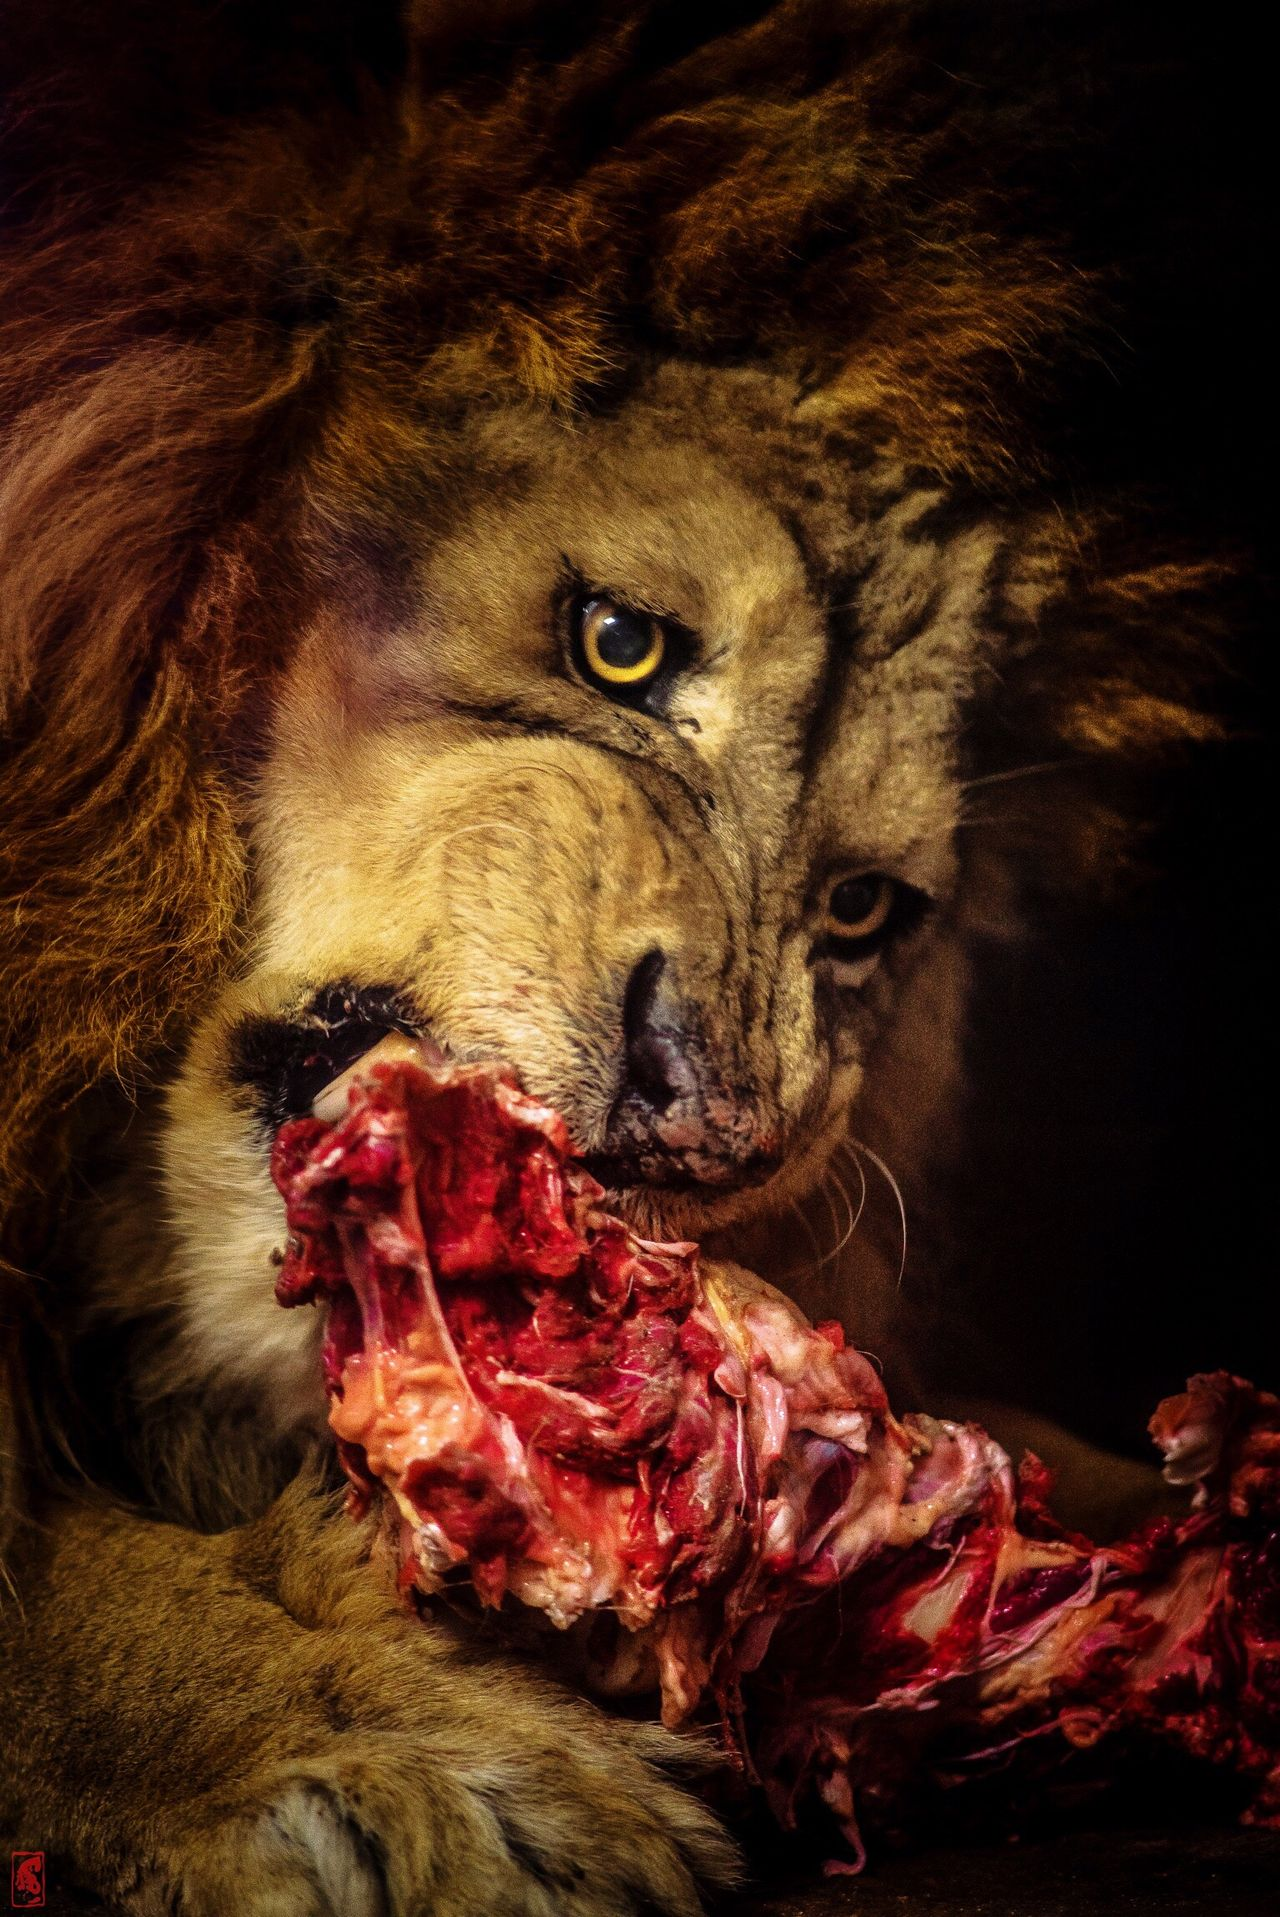 Leo Horror Animal Evil Shock Close-up Animal Themes No People Outdoors Mammal Wild Wildlife & Nature Wildlife Photography Artistic Art